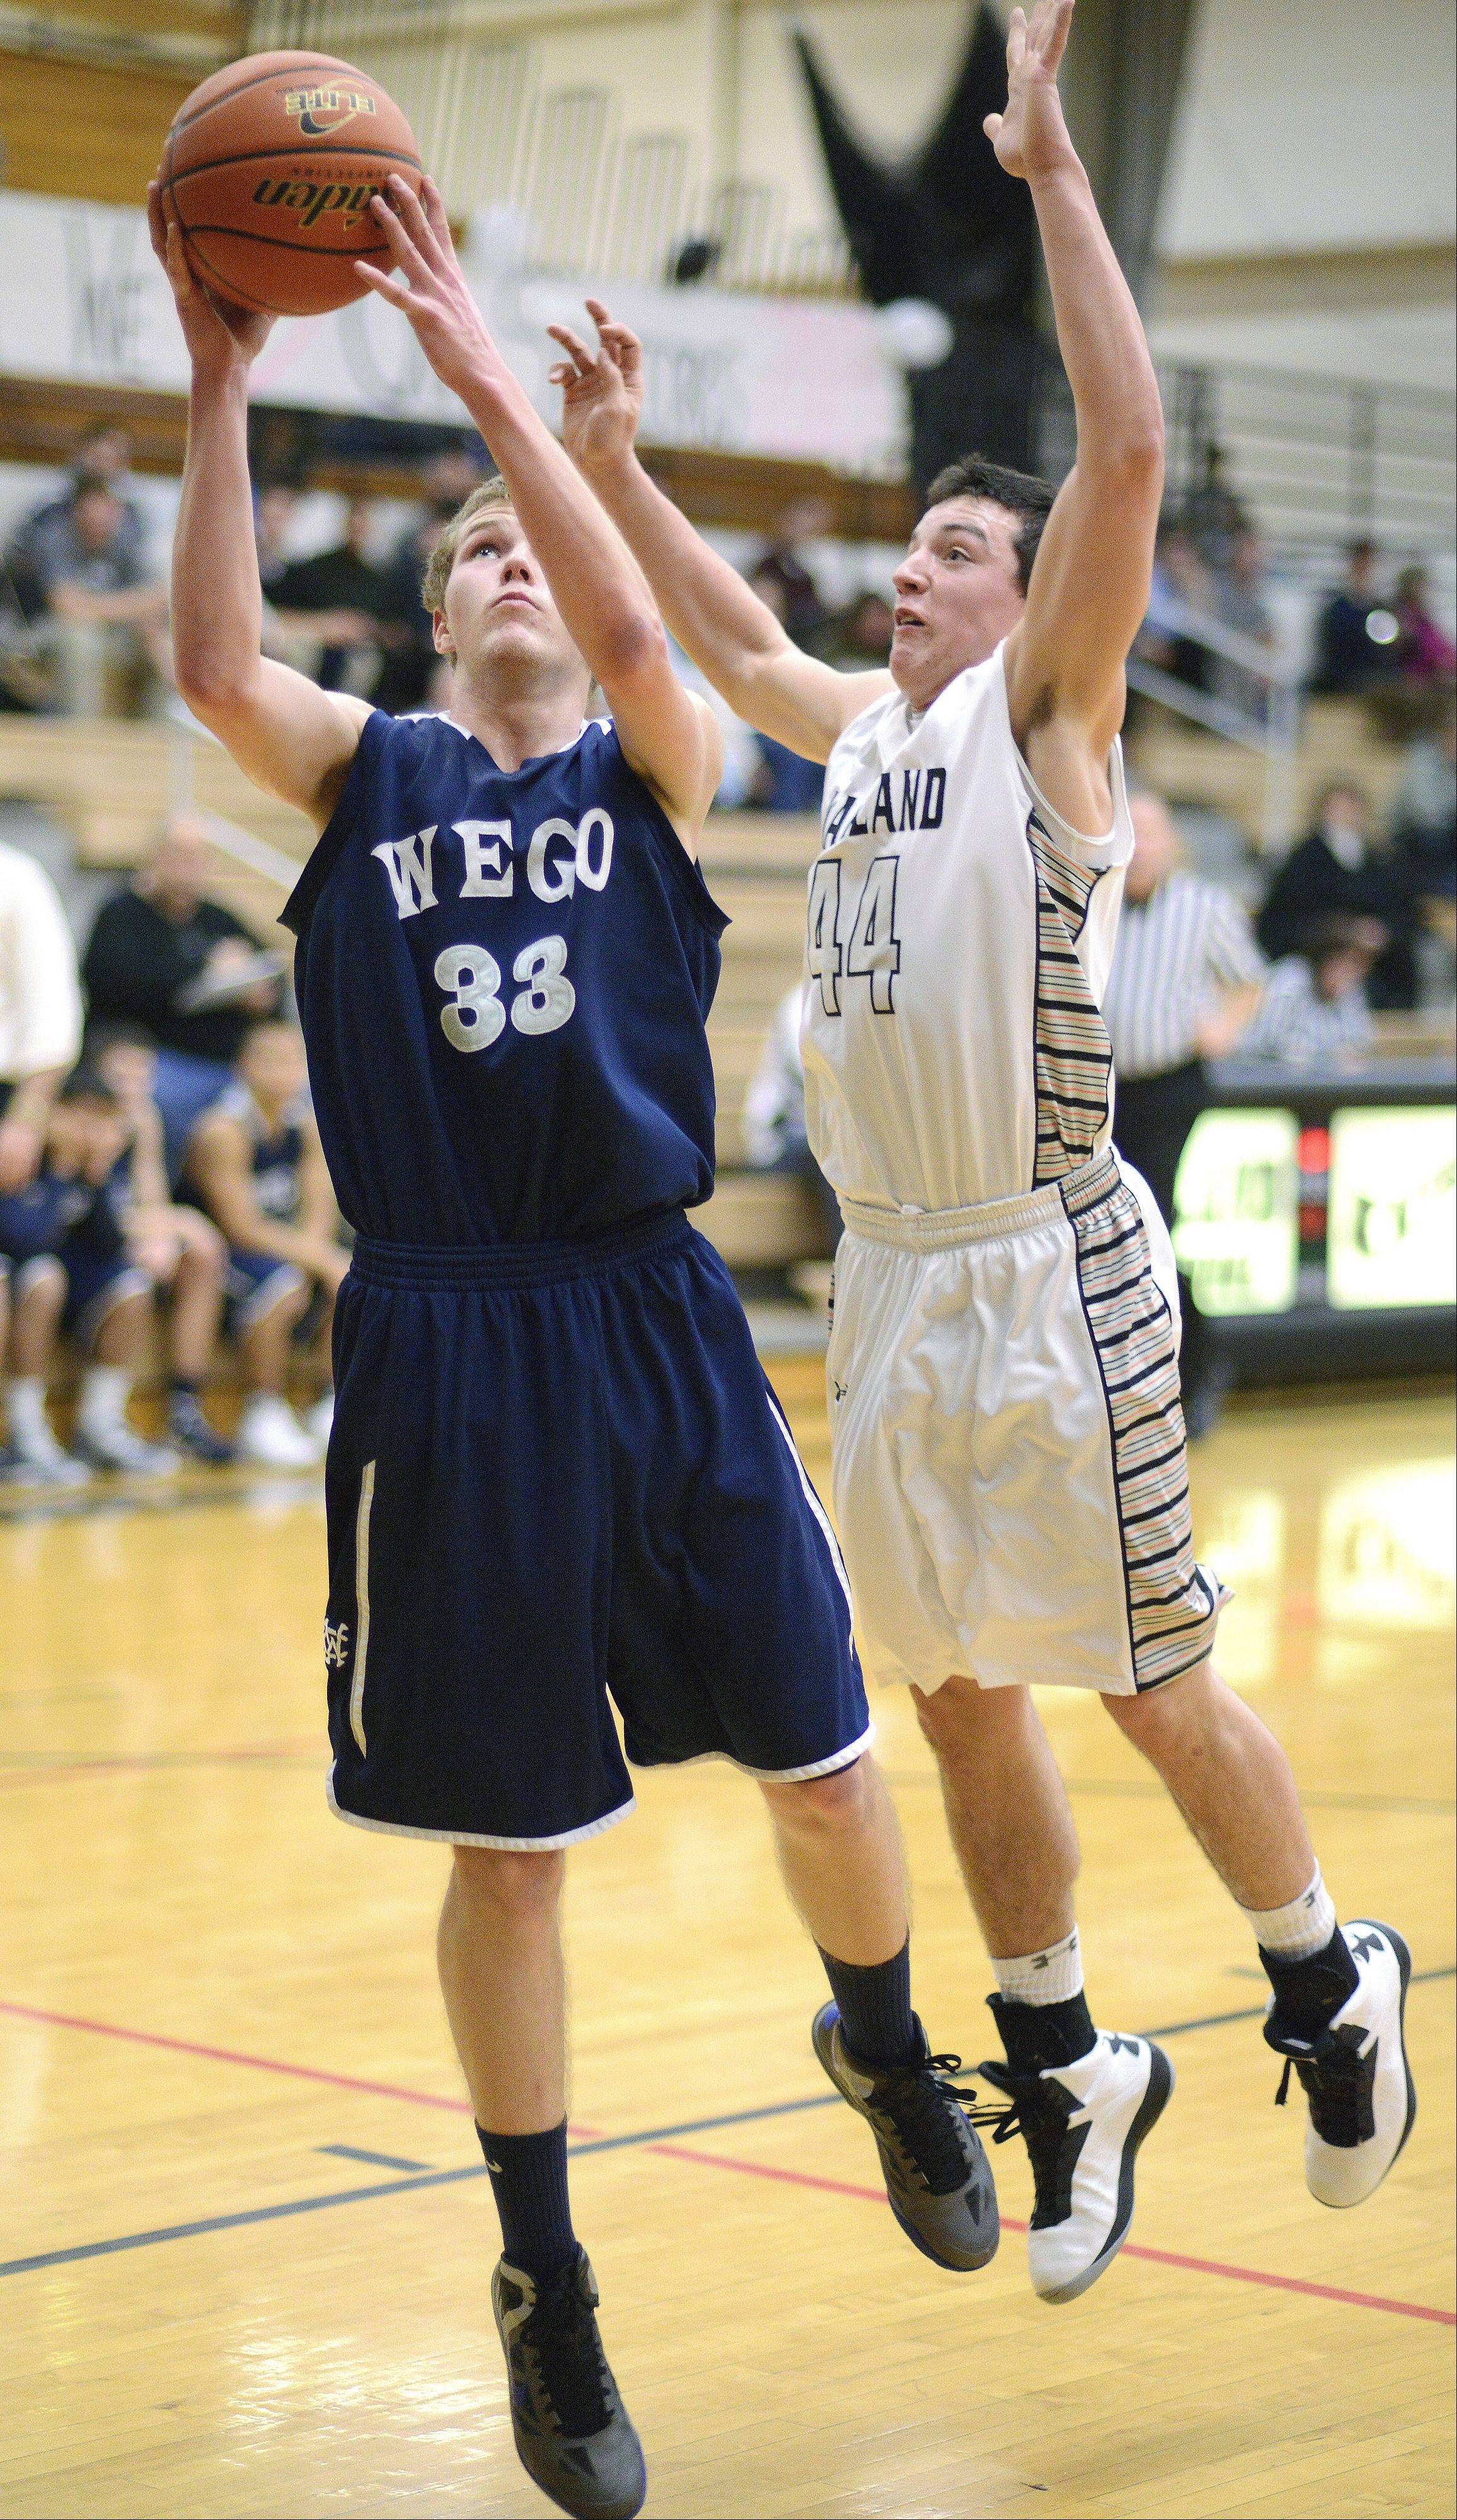 West Chicago�s Mike Zajac is fouled by Kaneland�s Matt Limbrunner as he makes a shot for the basket in the third quarter on Tuesday, February 5.